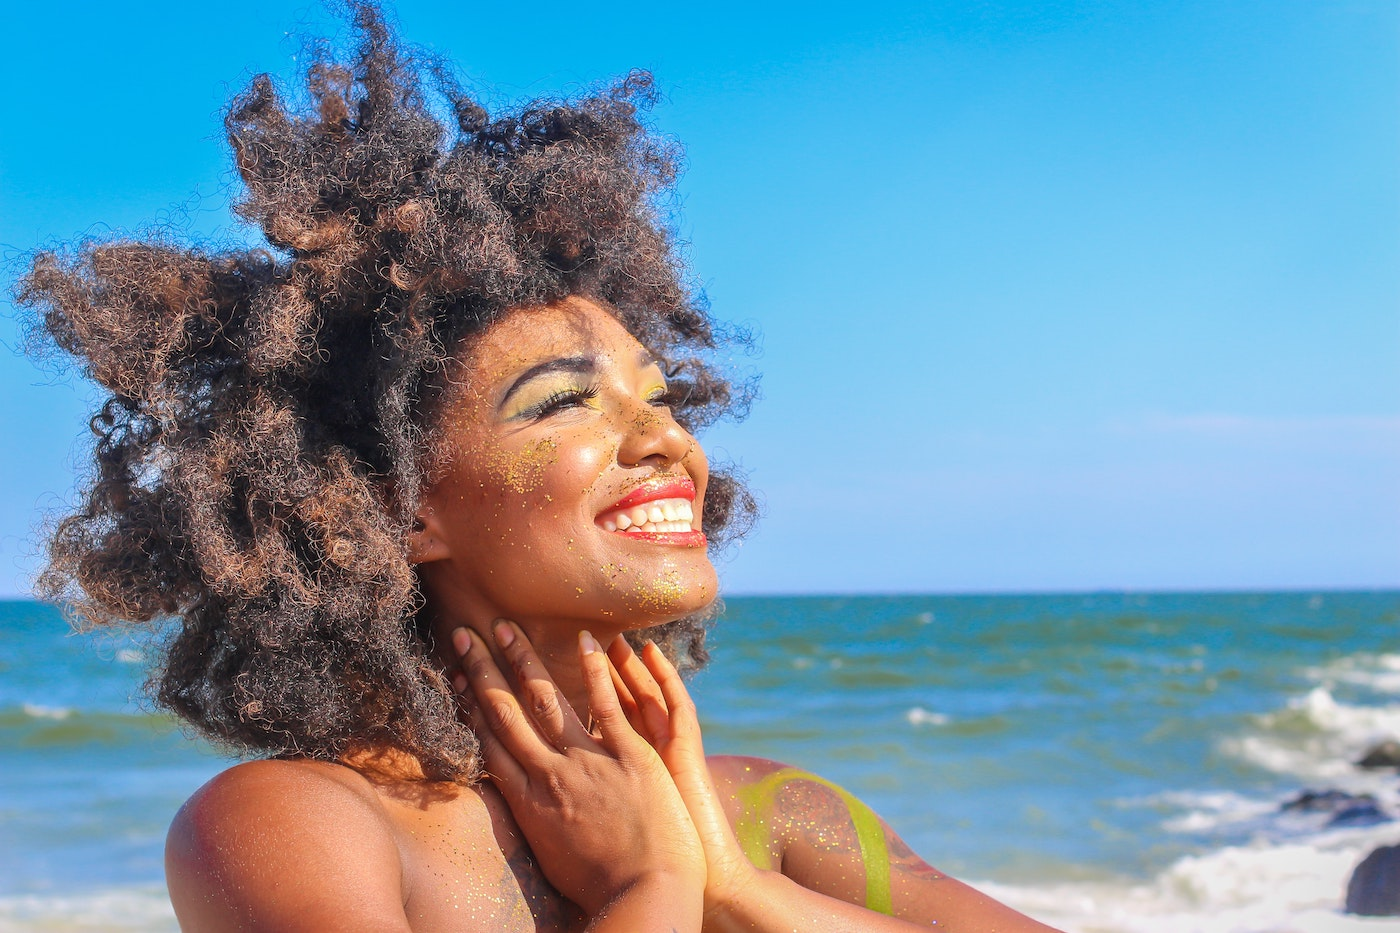 A happy women smiling and living with intention.